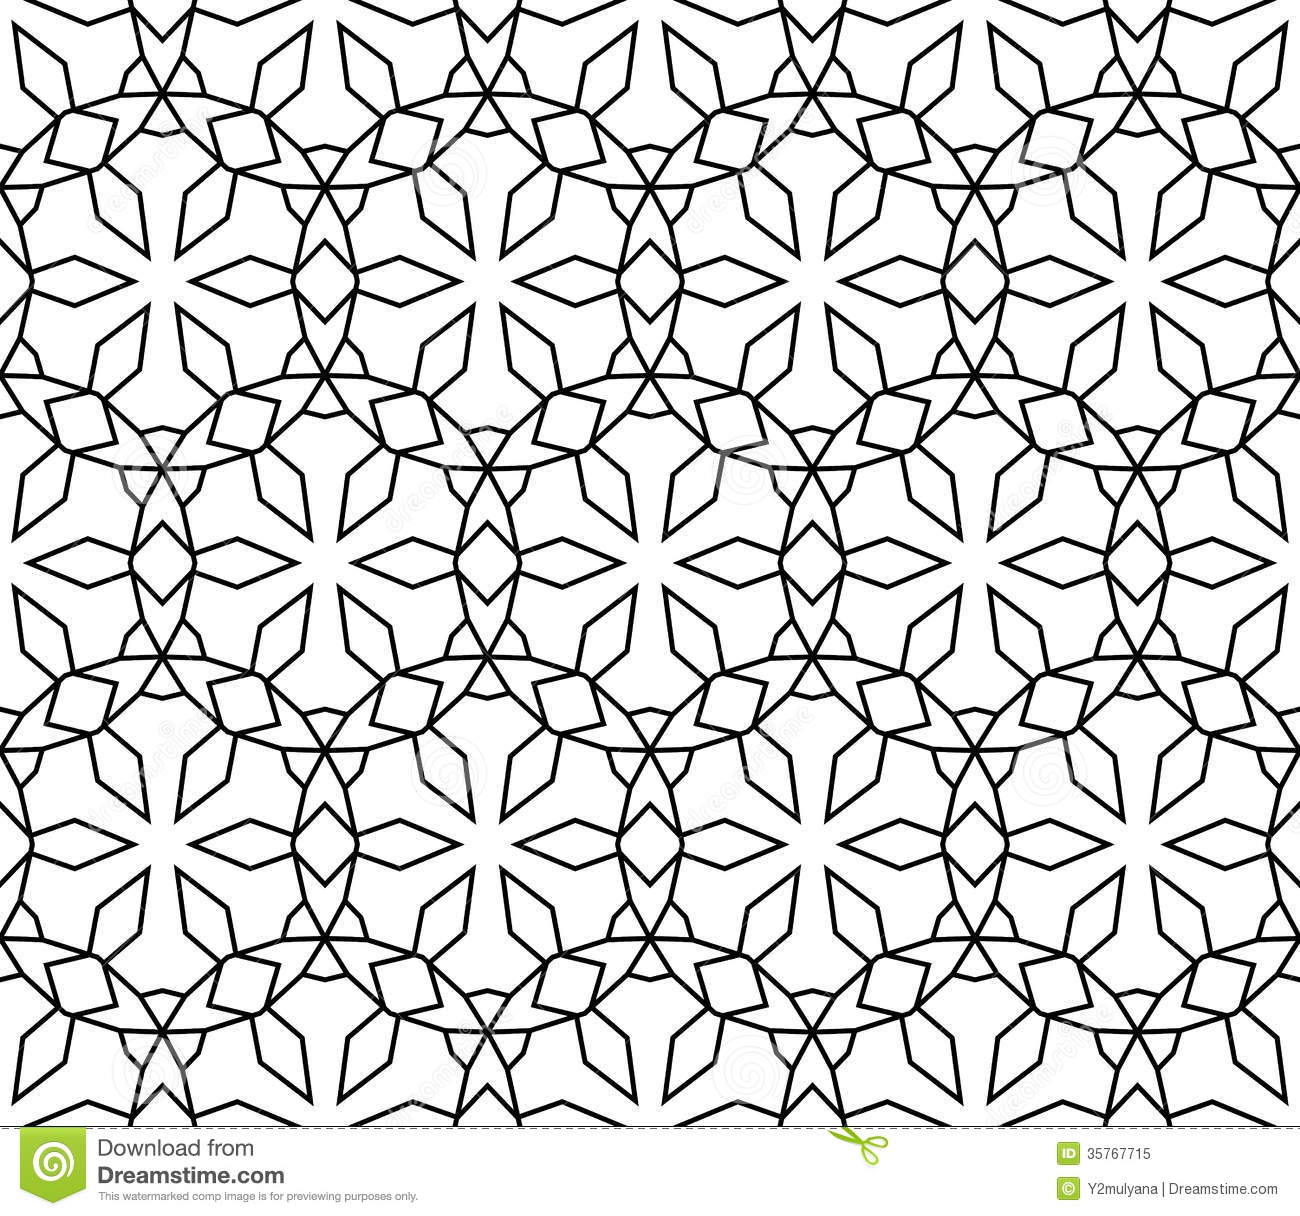 Line Art Patterns : The gallery for gt geometric line art patterns